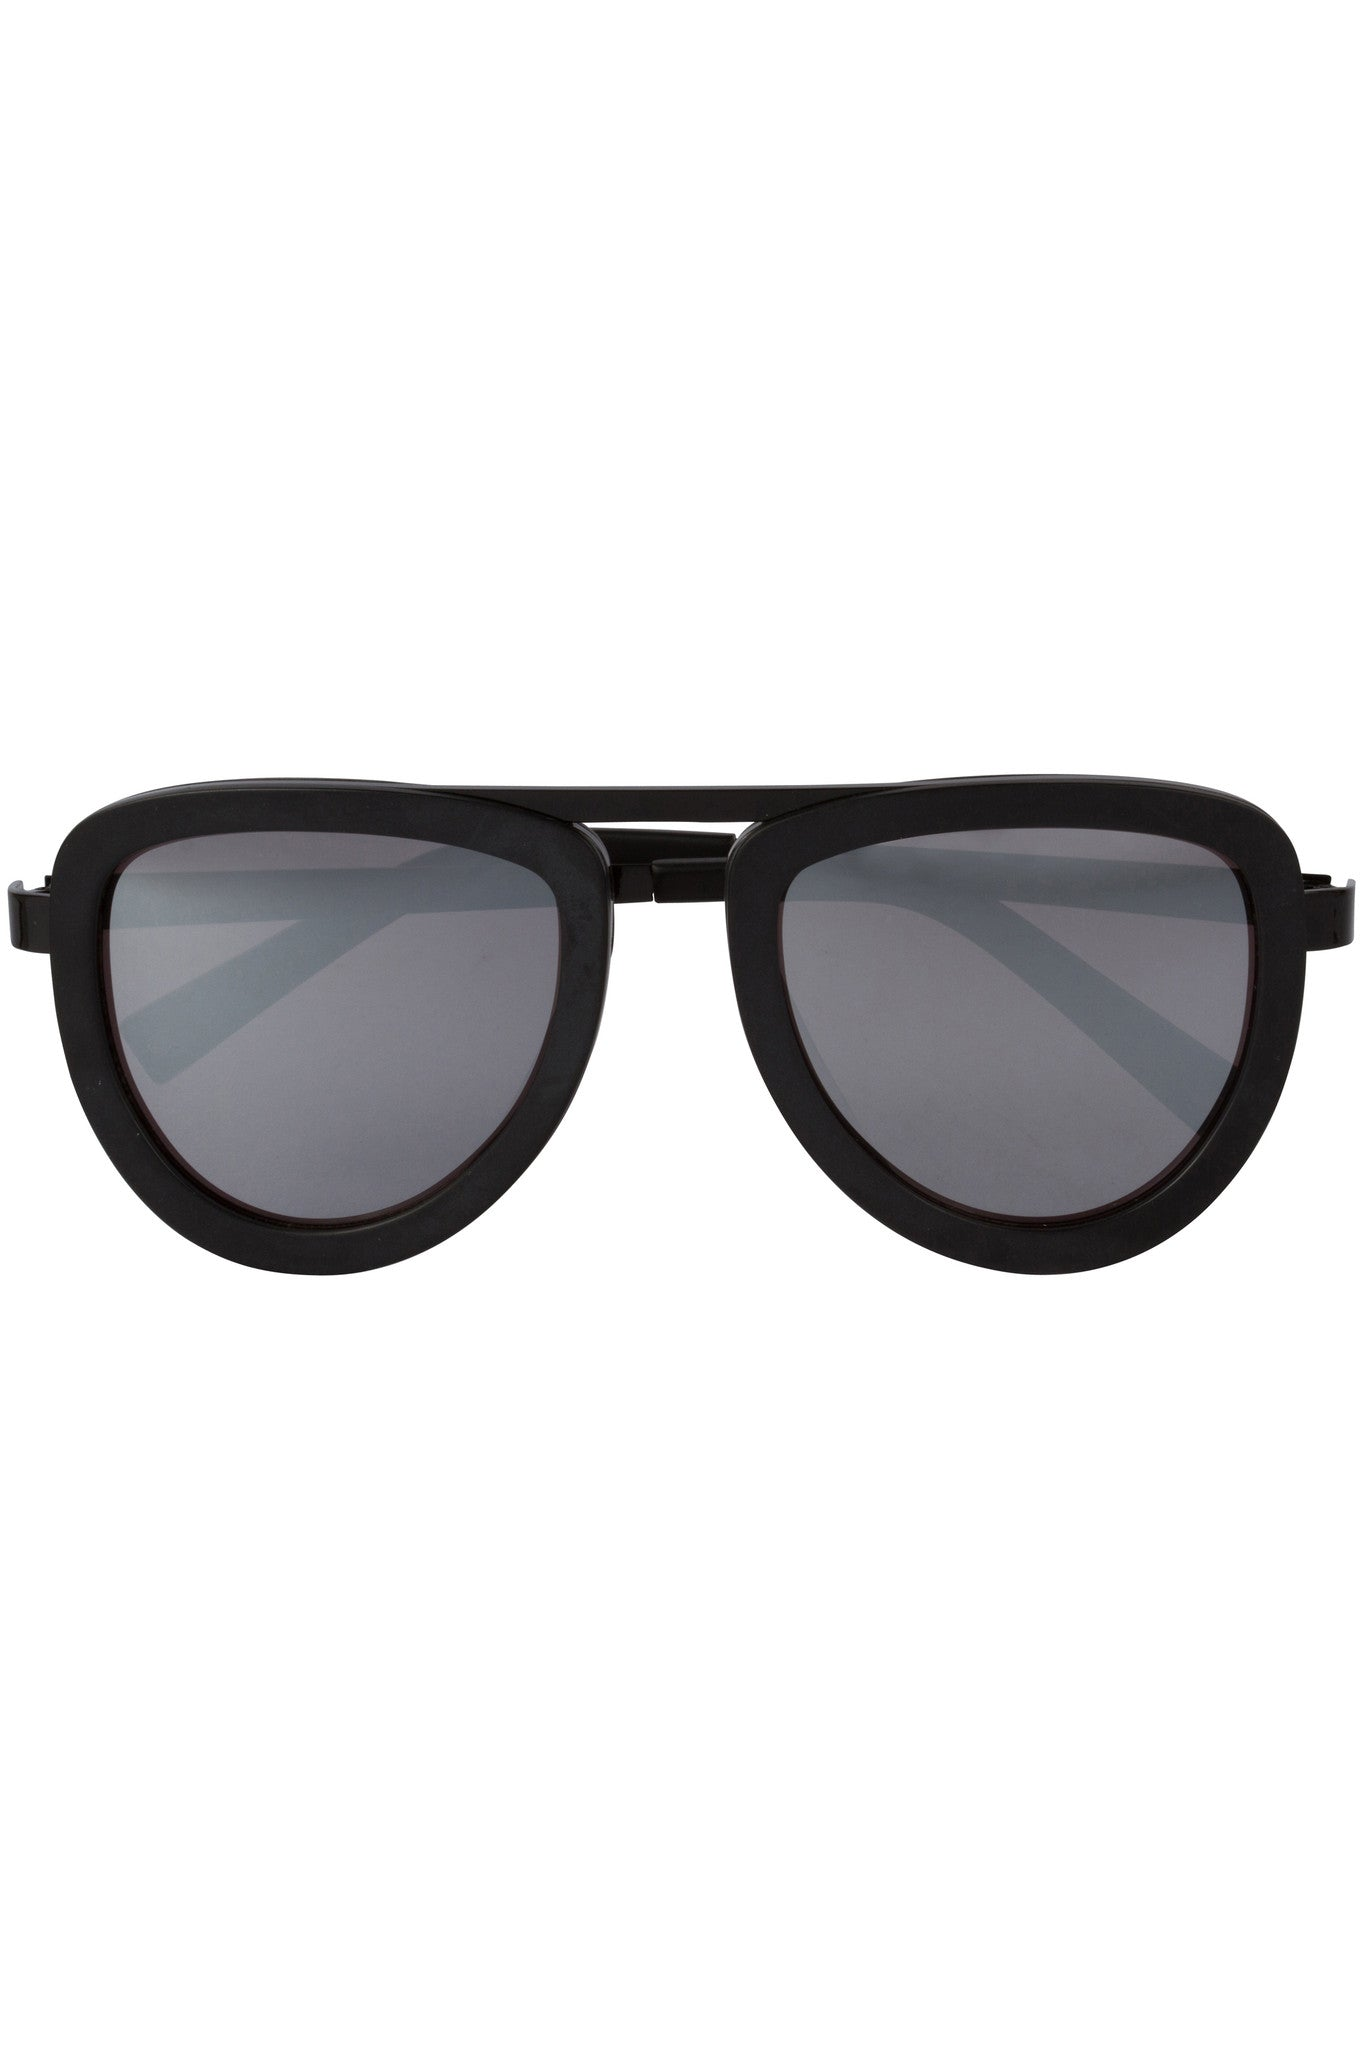 JONES BLACK ACETATE AND SILVER MIRROR SUNGLASSES